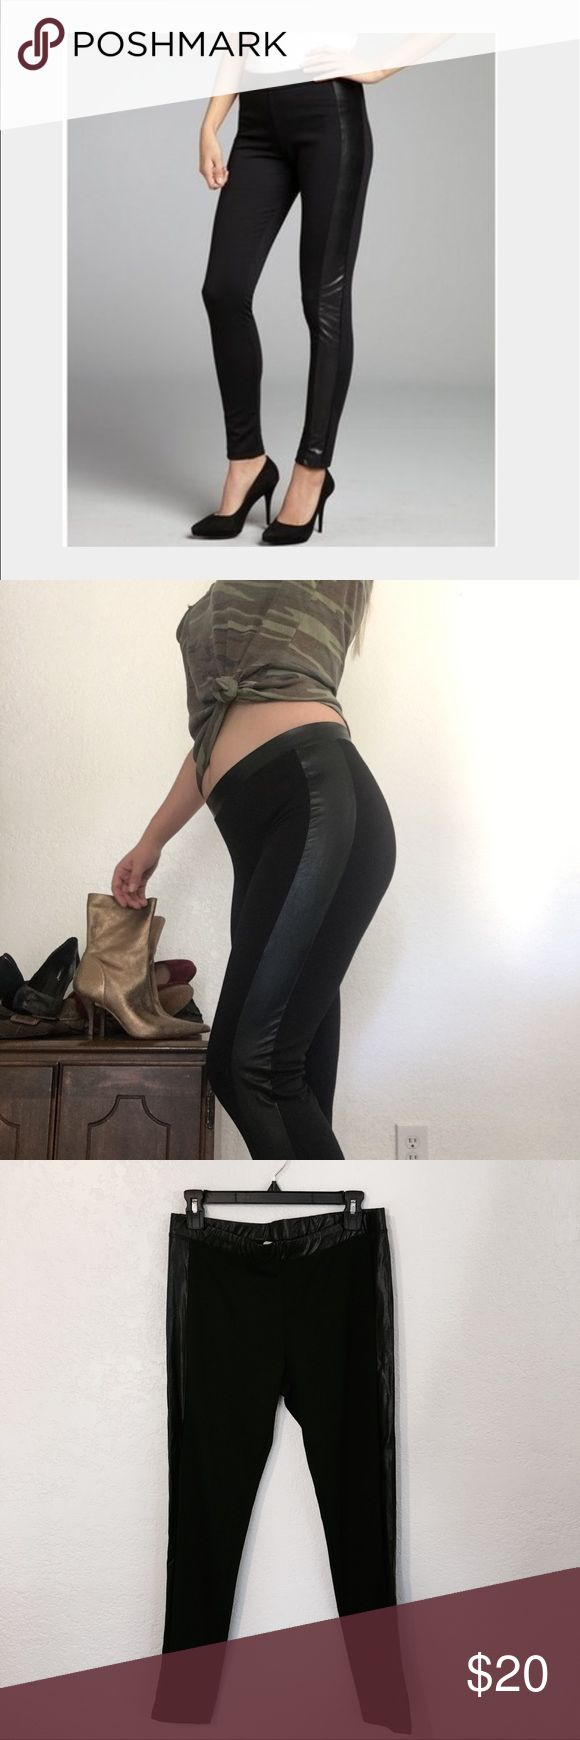 Wyatt leather panel leggings Good thick quality fabric. Faux leather panels on the sides and around waistband. Leather is a little wrinkled. Size large. I'm an 8 and these fit me perfectly with a little wiggle room. wyatt Pants